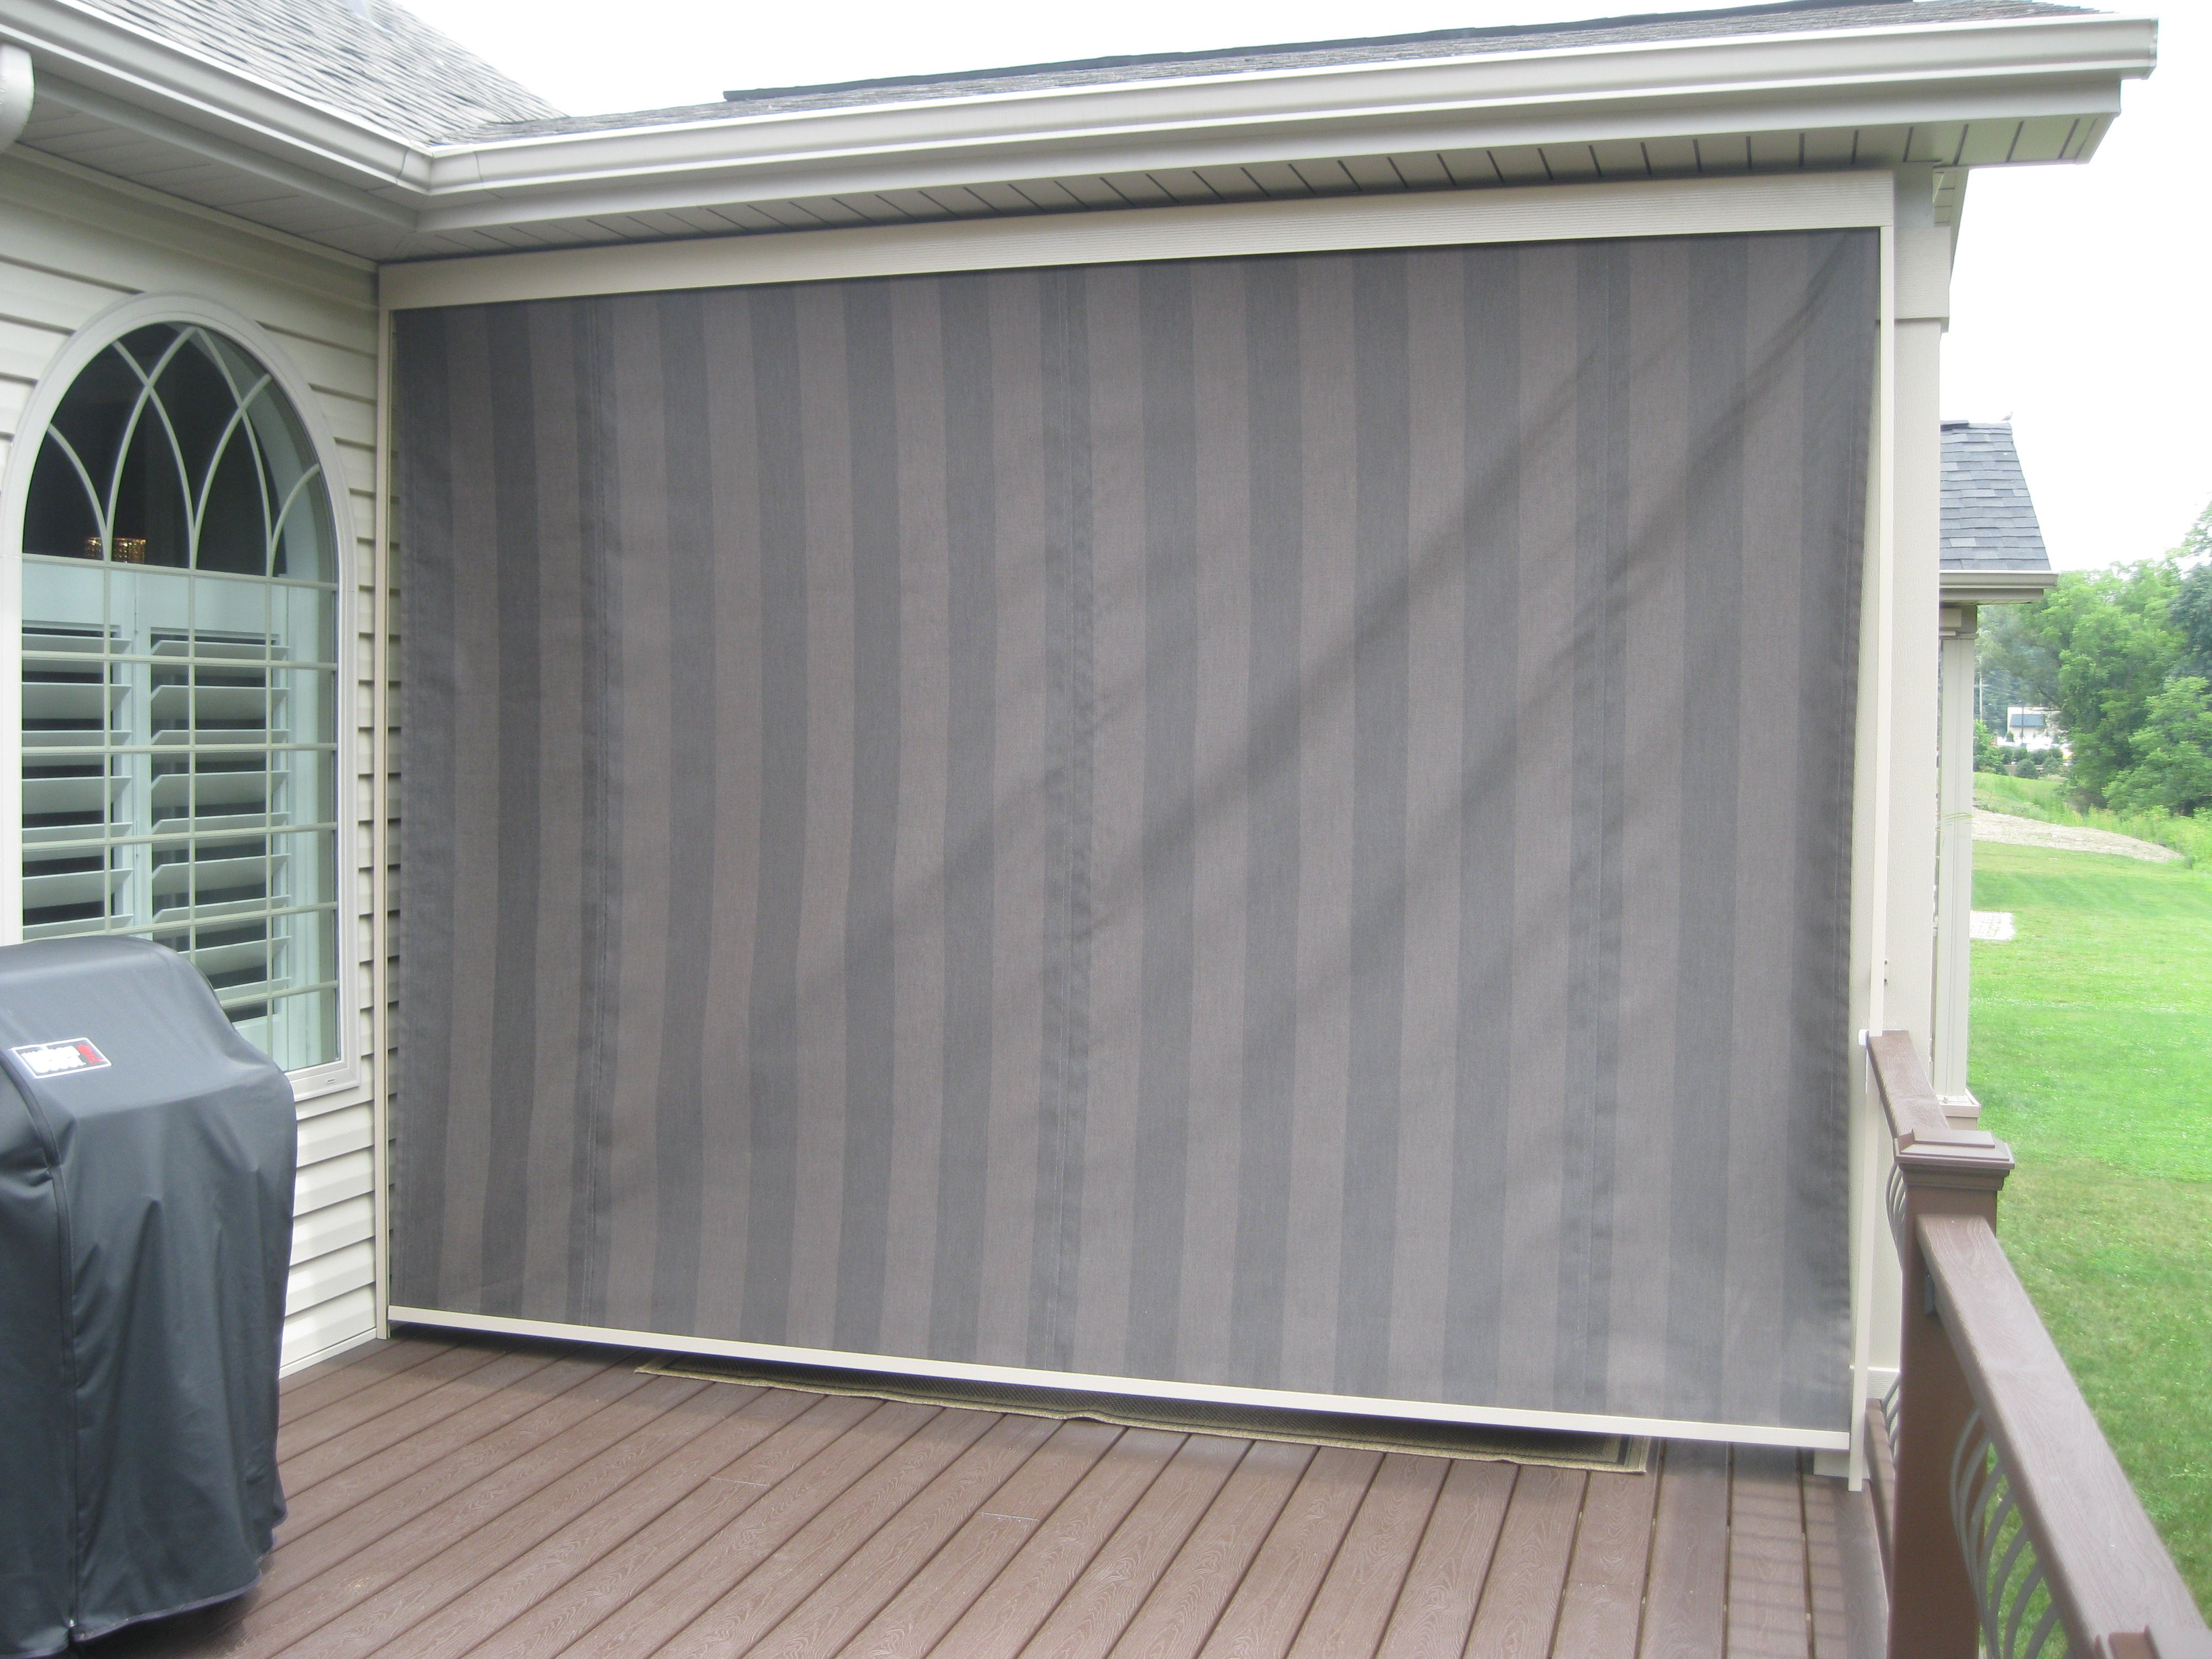 Here is an after picture of a Mastershade by Sunair